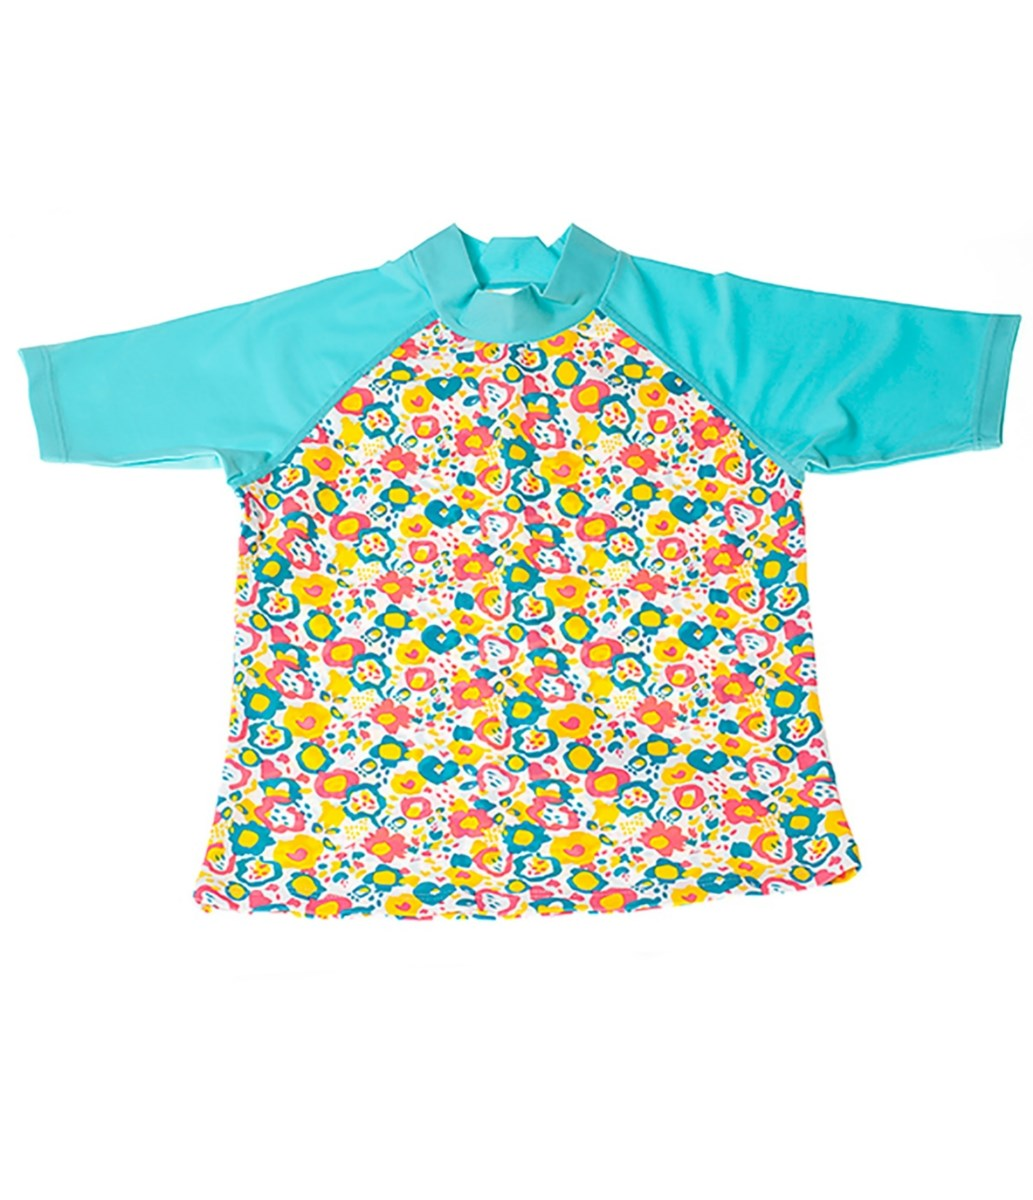 Rockley Cove UPF50+ Abstract Floral Rash Vest